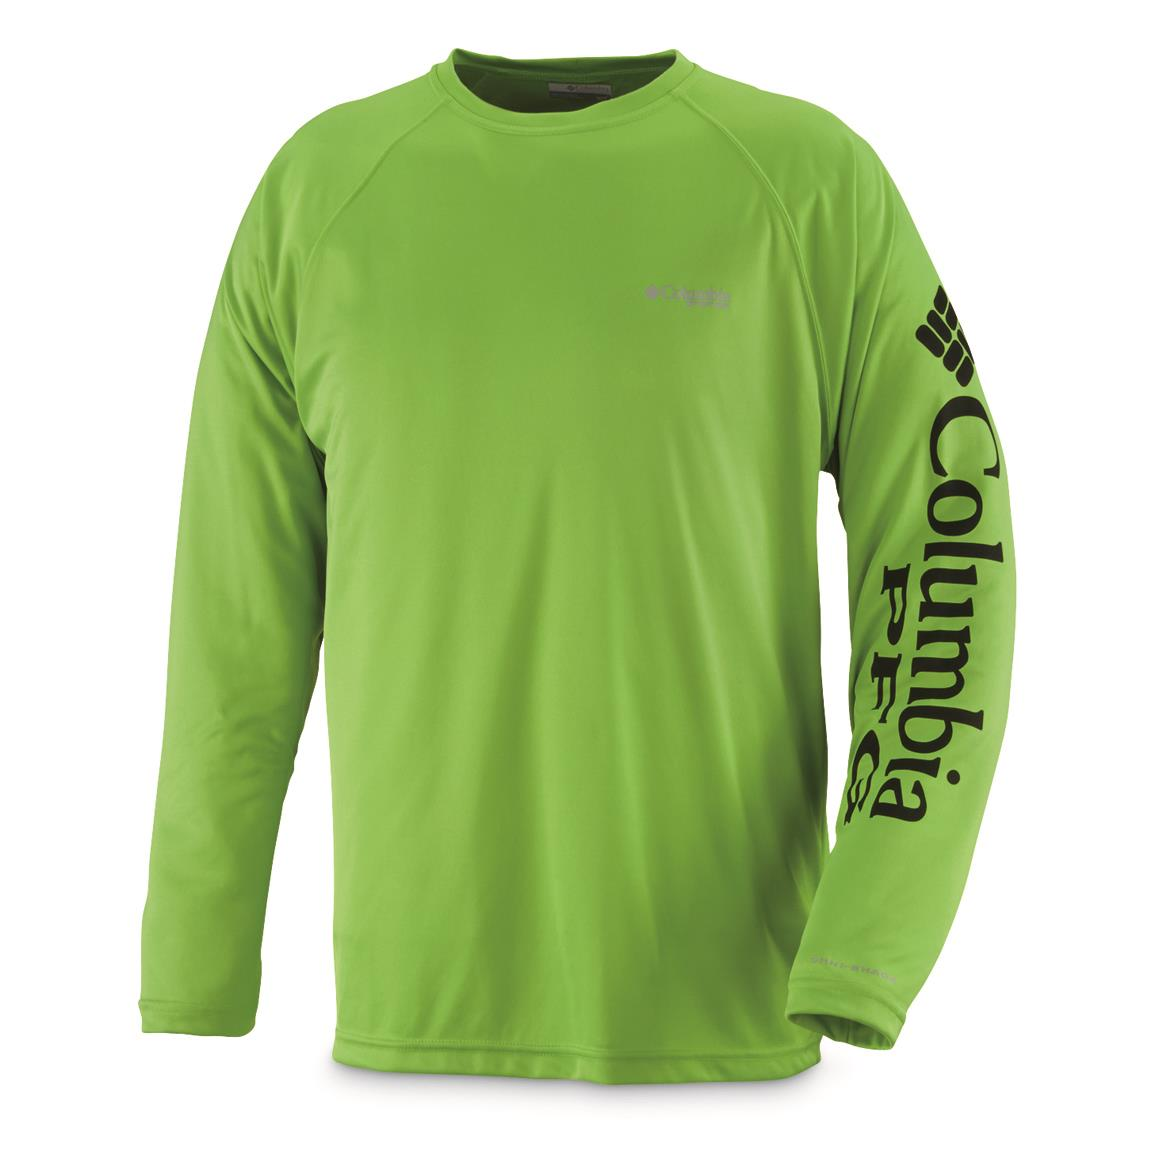 Columbia men 39 s pfg terminal tackle long sleeve shirt for What is a pfg shirt